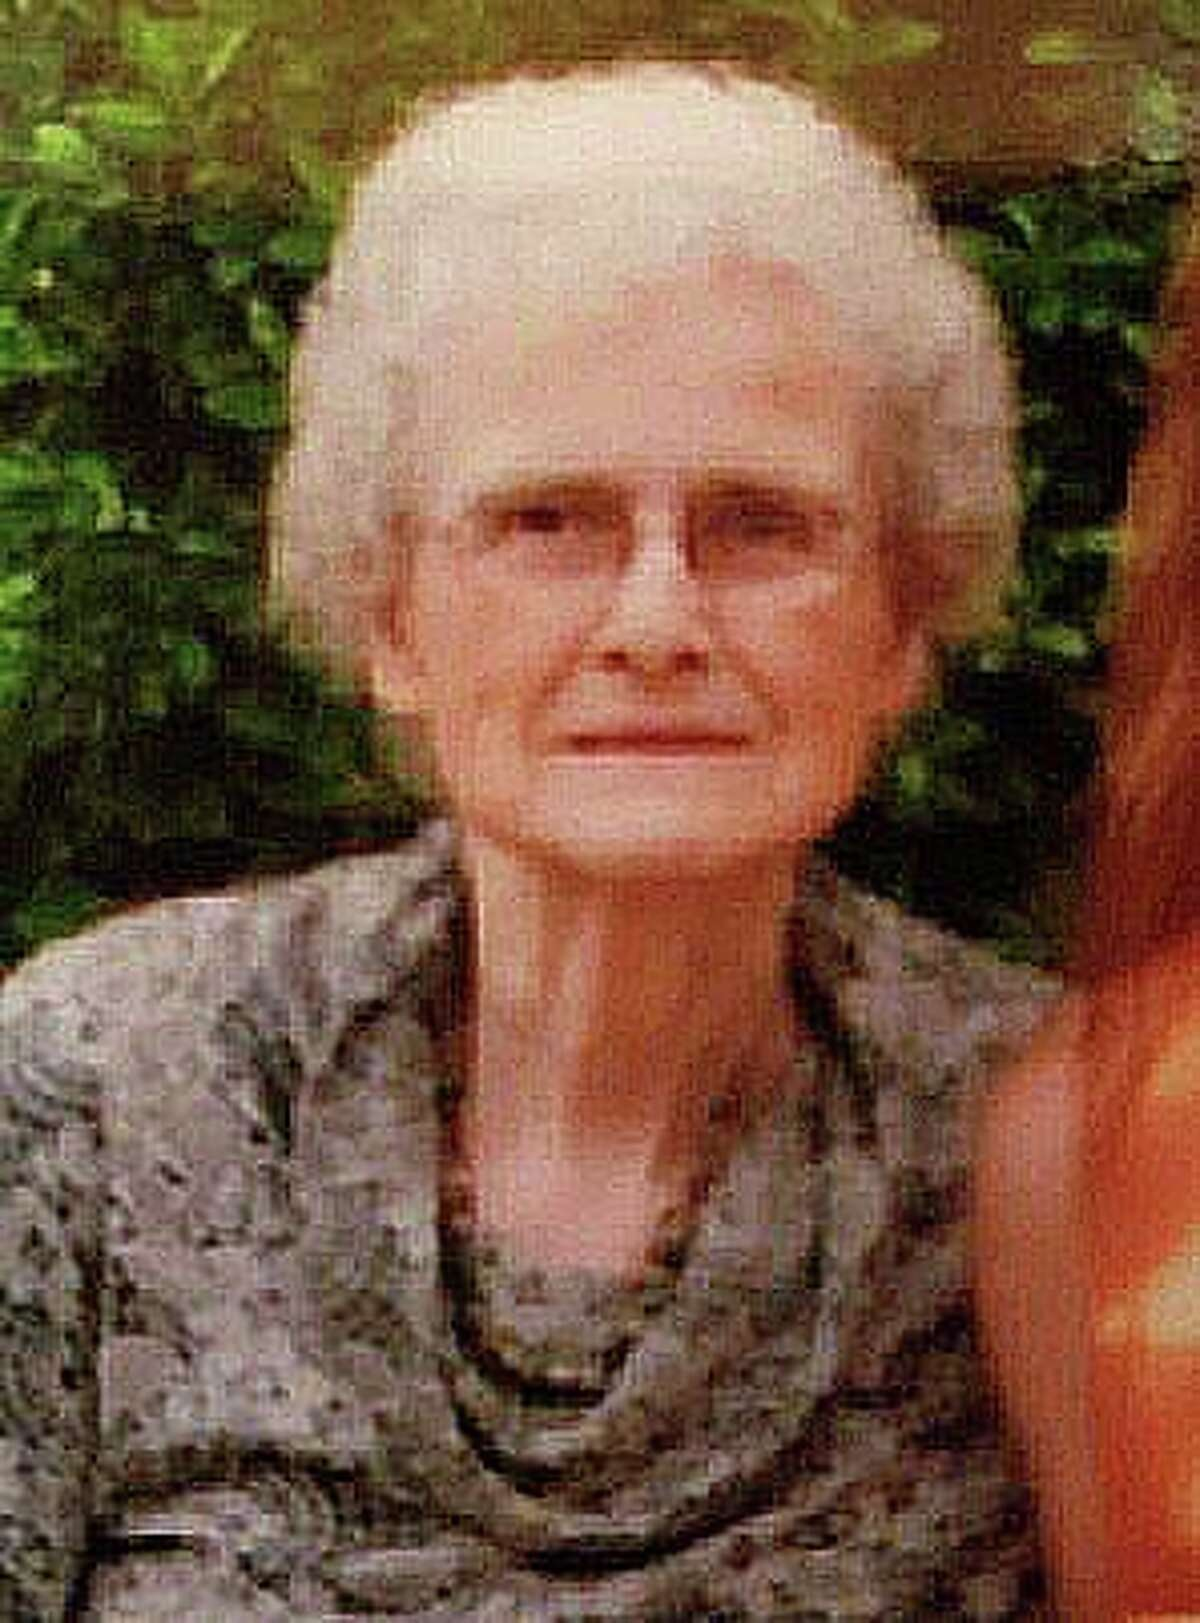 A State Police K-9 and trooper team found a missing 90-year-old Andover woman late Wednesday night on June 17, 2020. Shortly after 10 p.m. Monday, a Silver Alert was issued for the woman, Mary Merryman